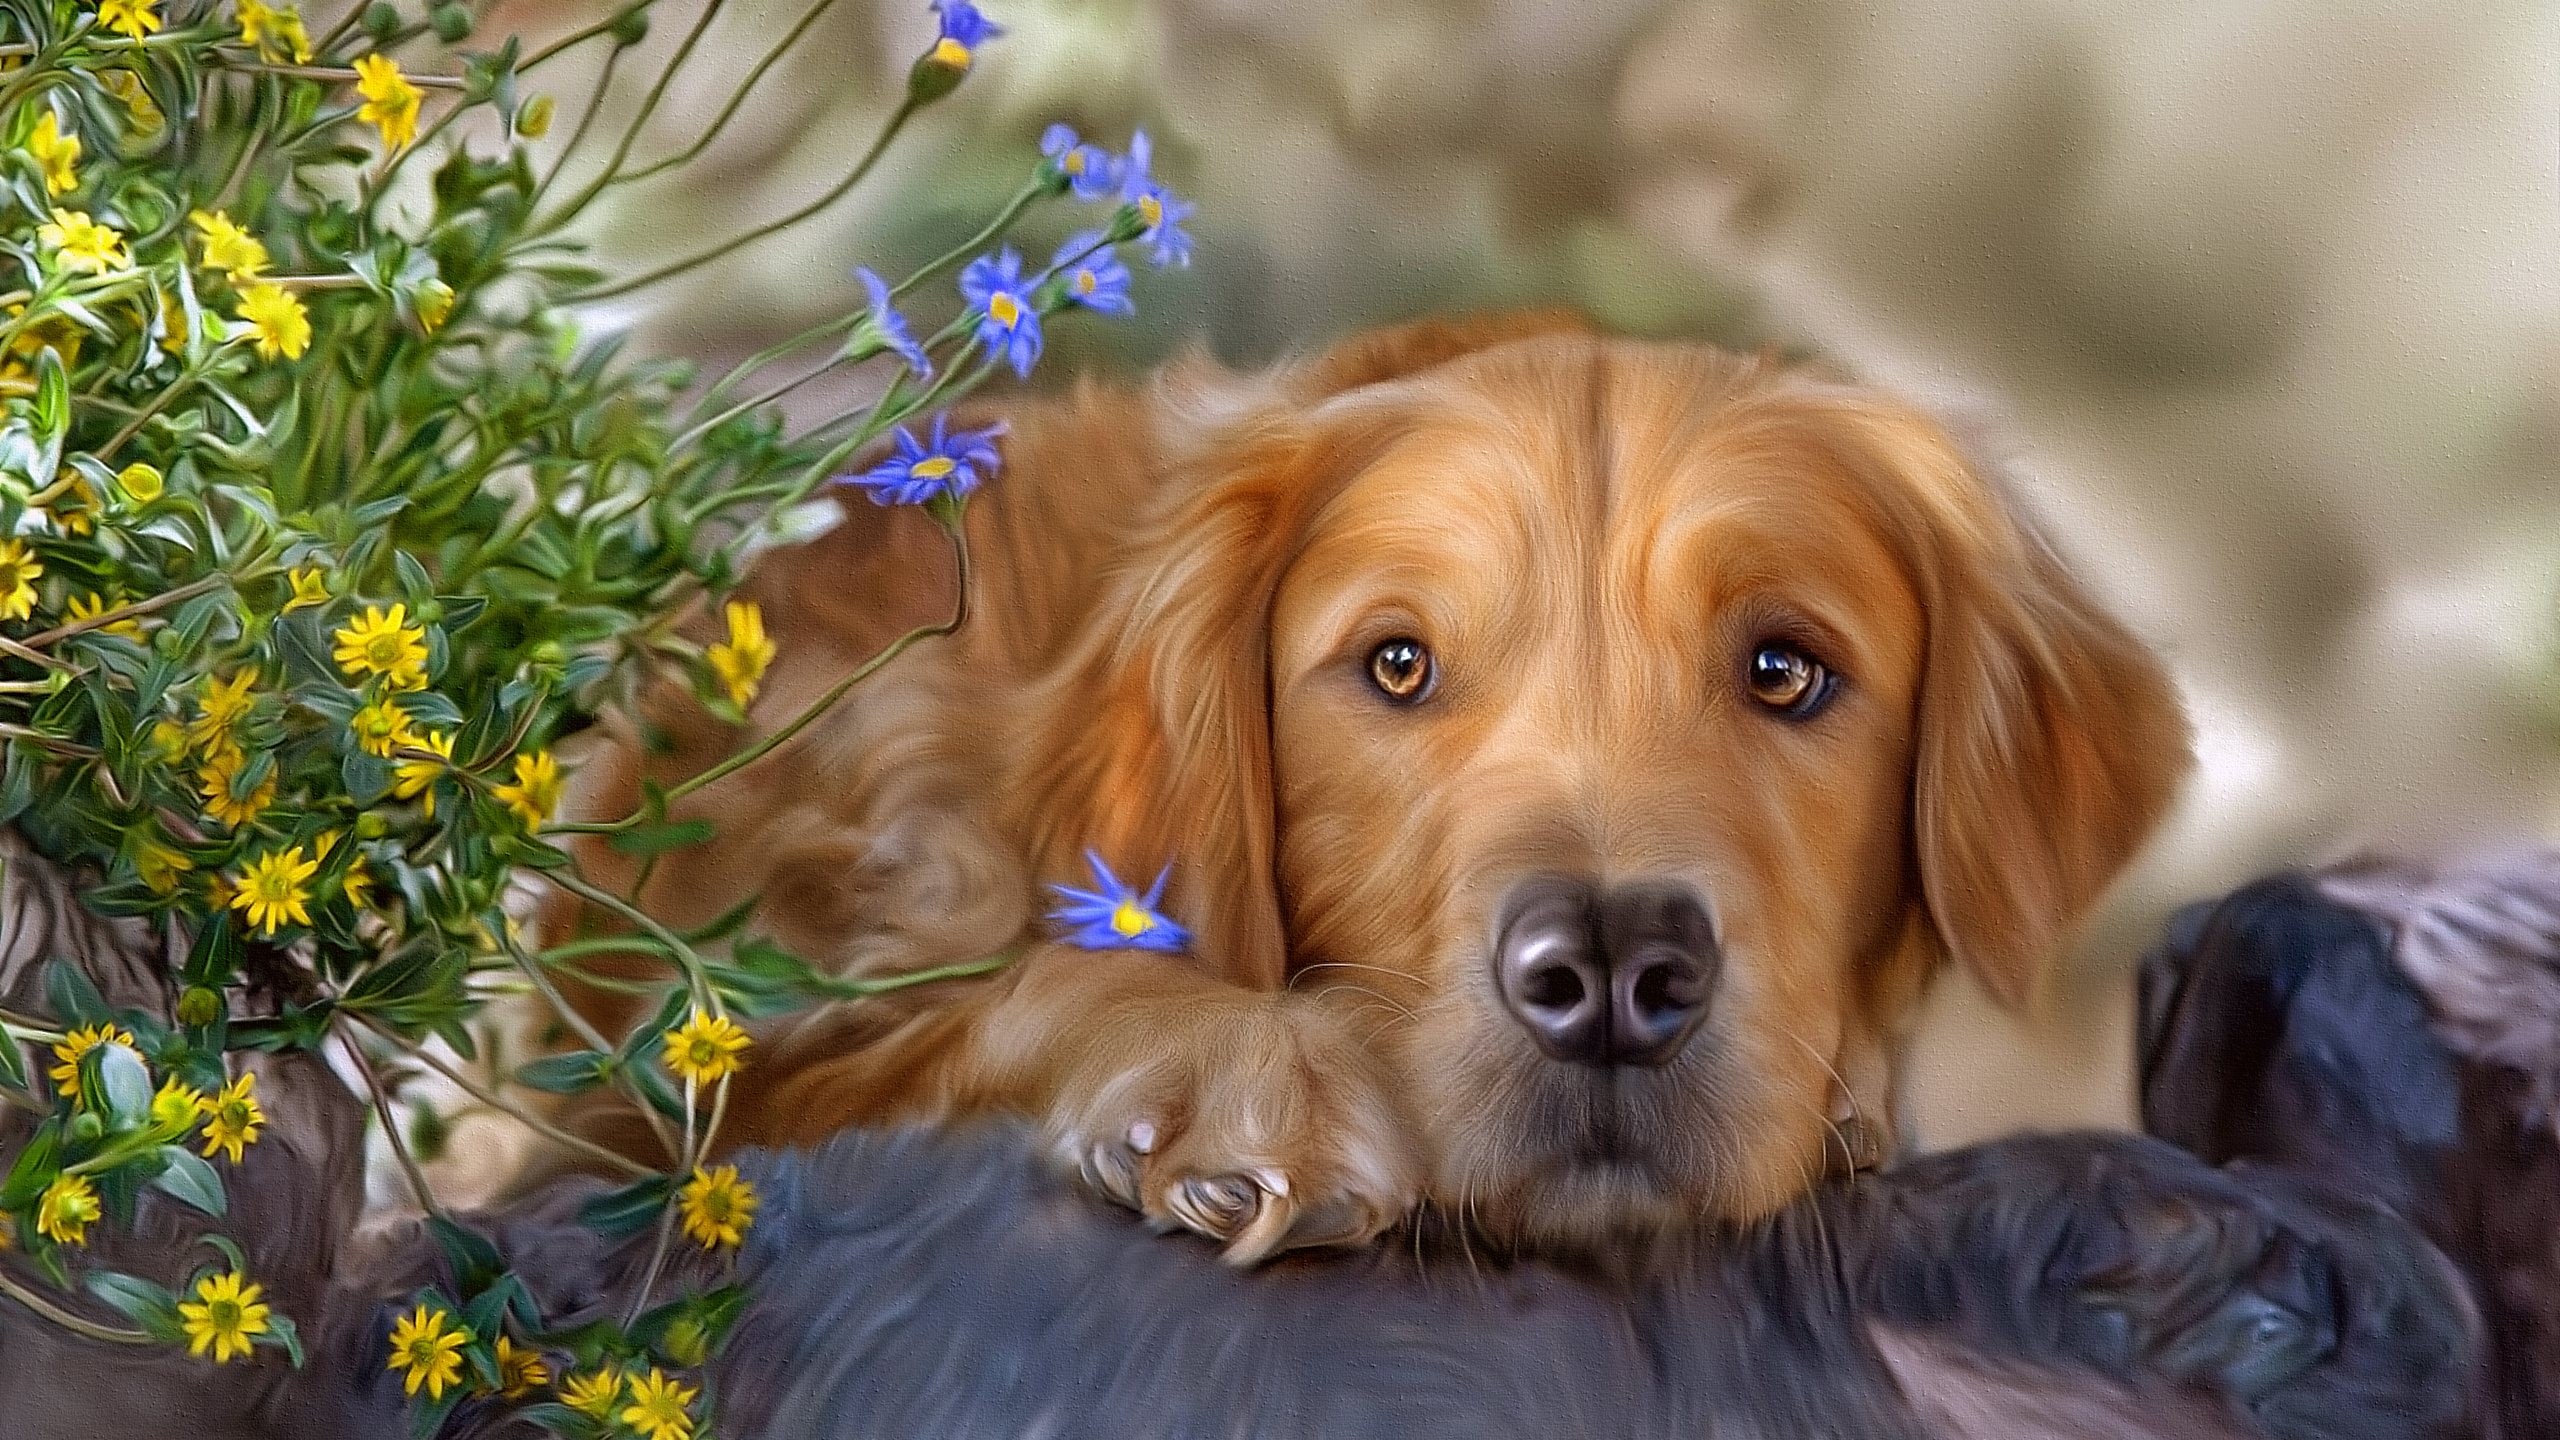 dog wallpapers full hd wallpaper search - HD 1400×1050